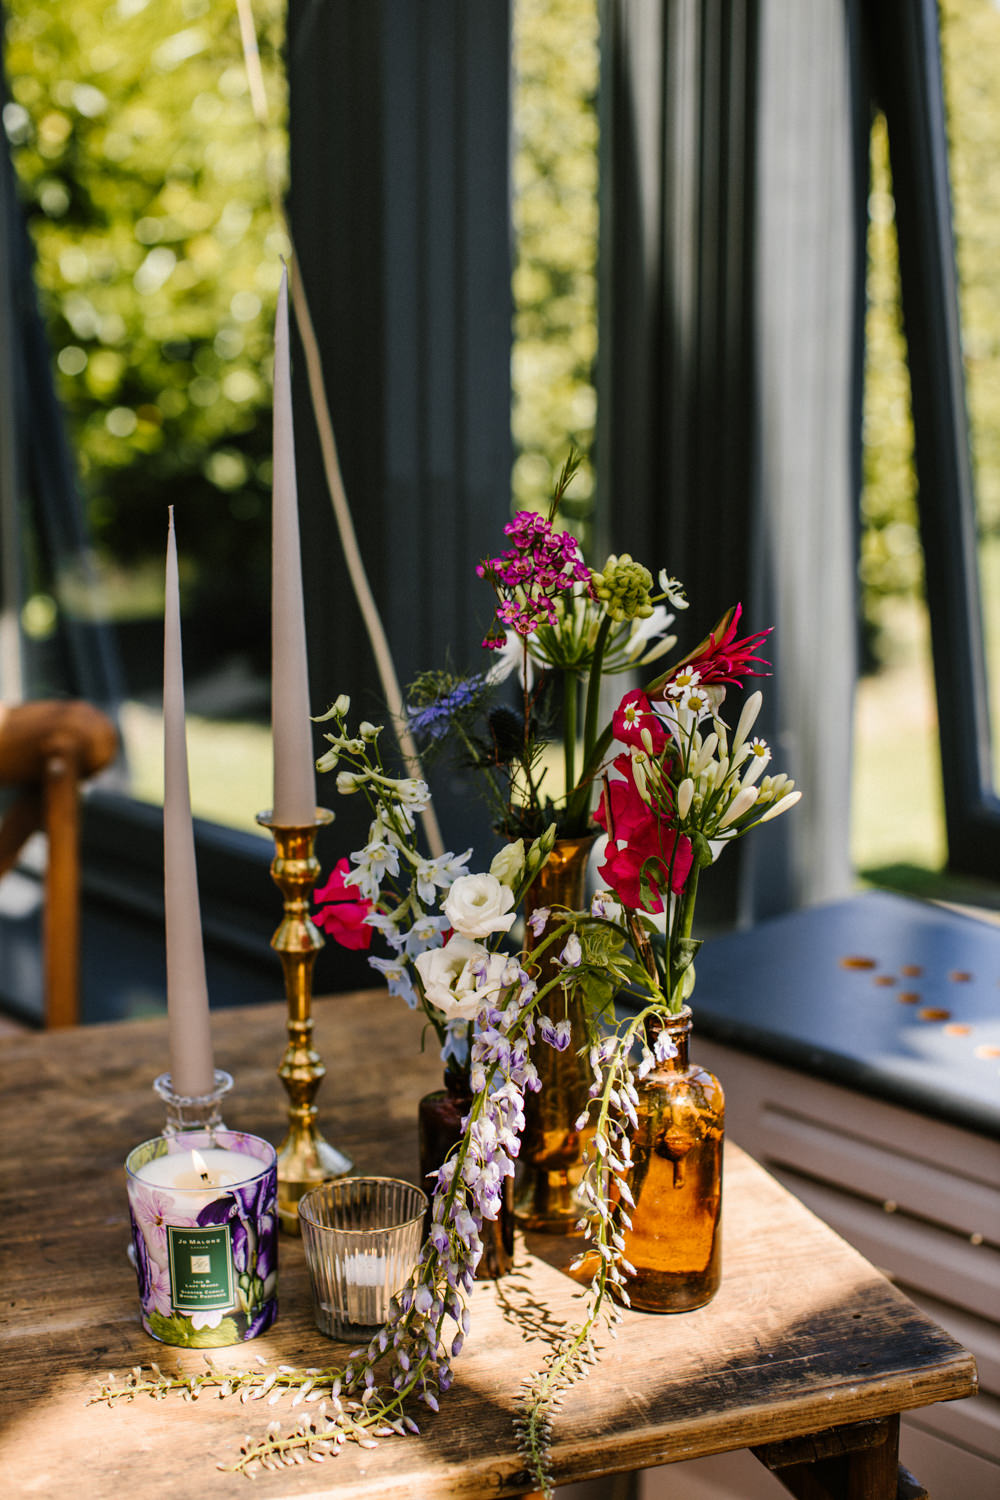 Table Flowers Bottles Candles Decor Titchwell Manor Wedding Honey and The Moon Photography